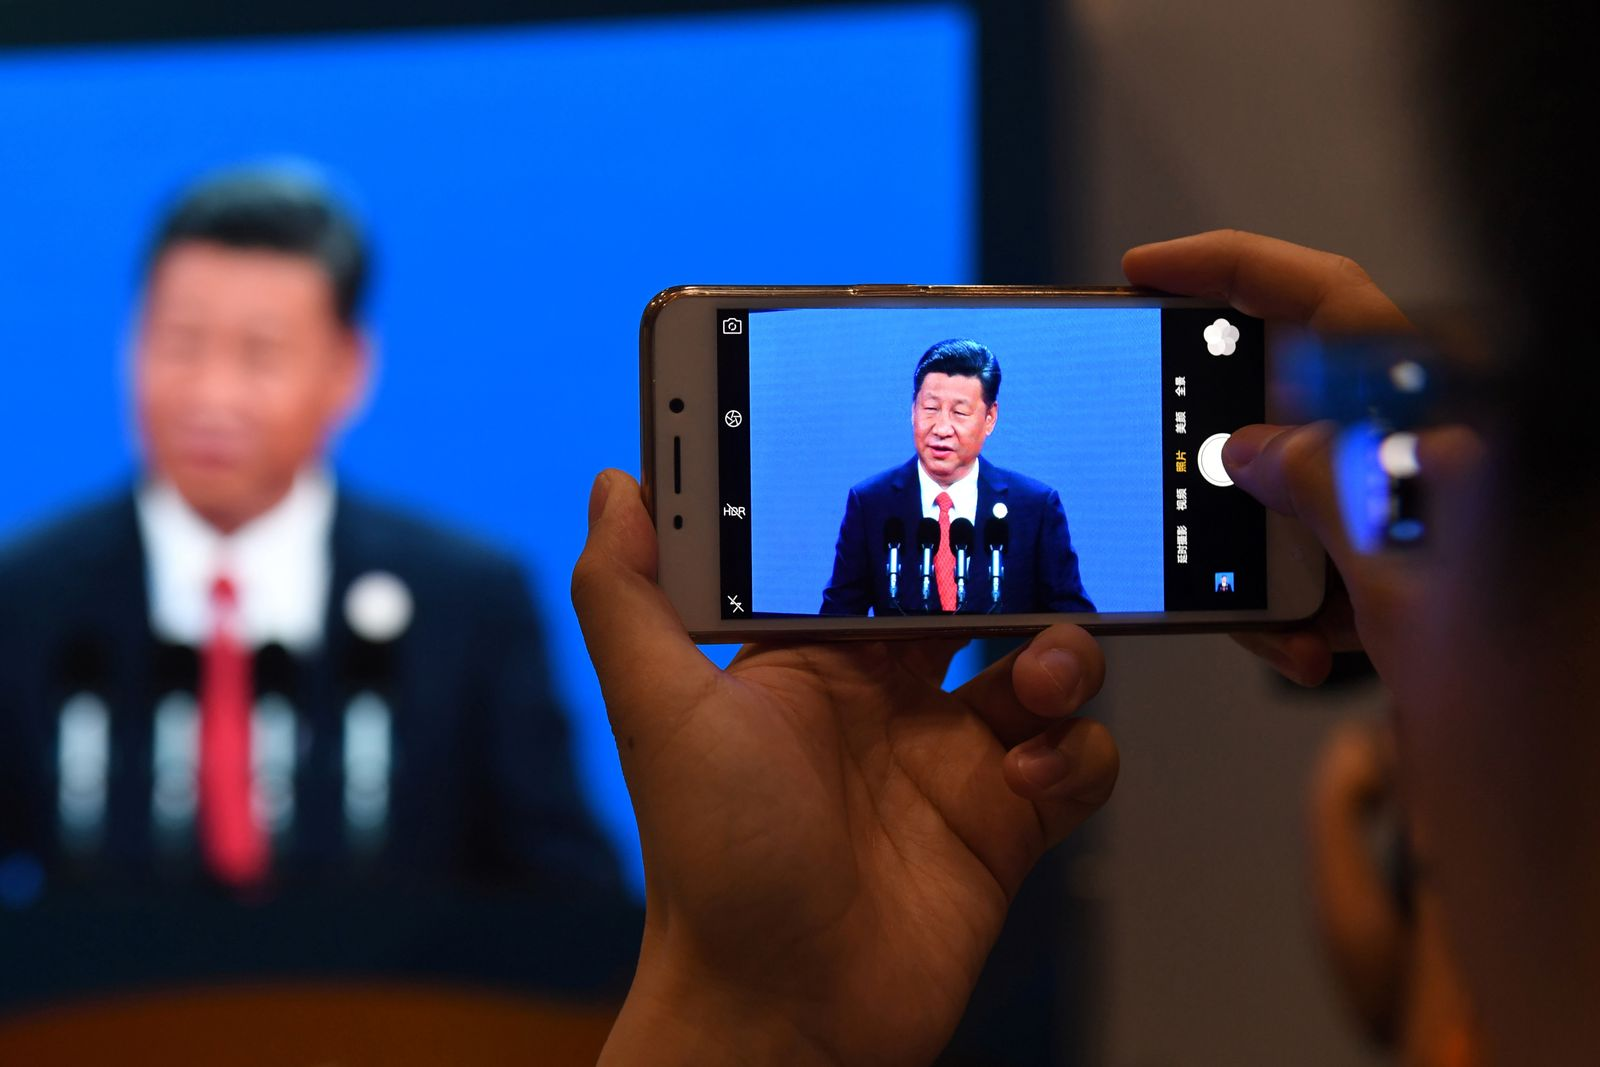 China / Xi Jinping / Internet / Handy